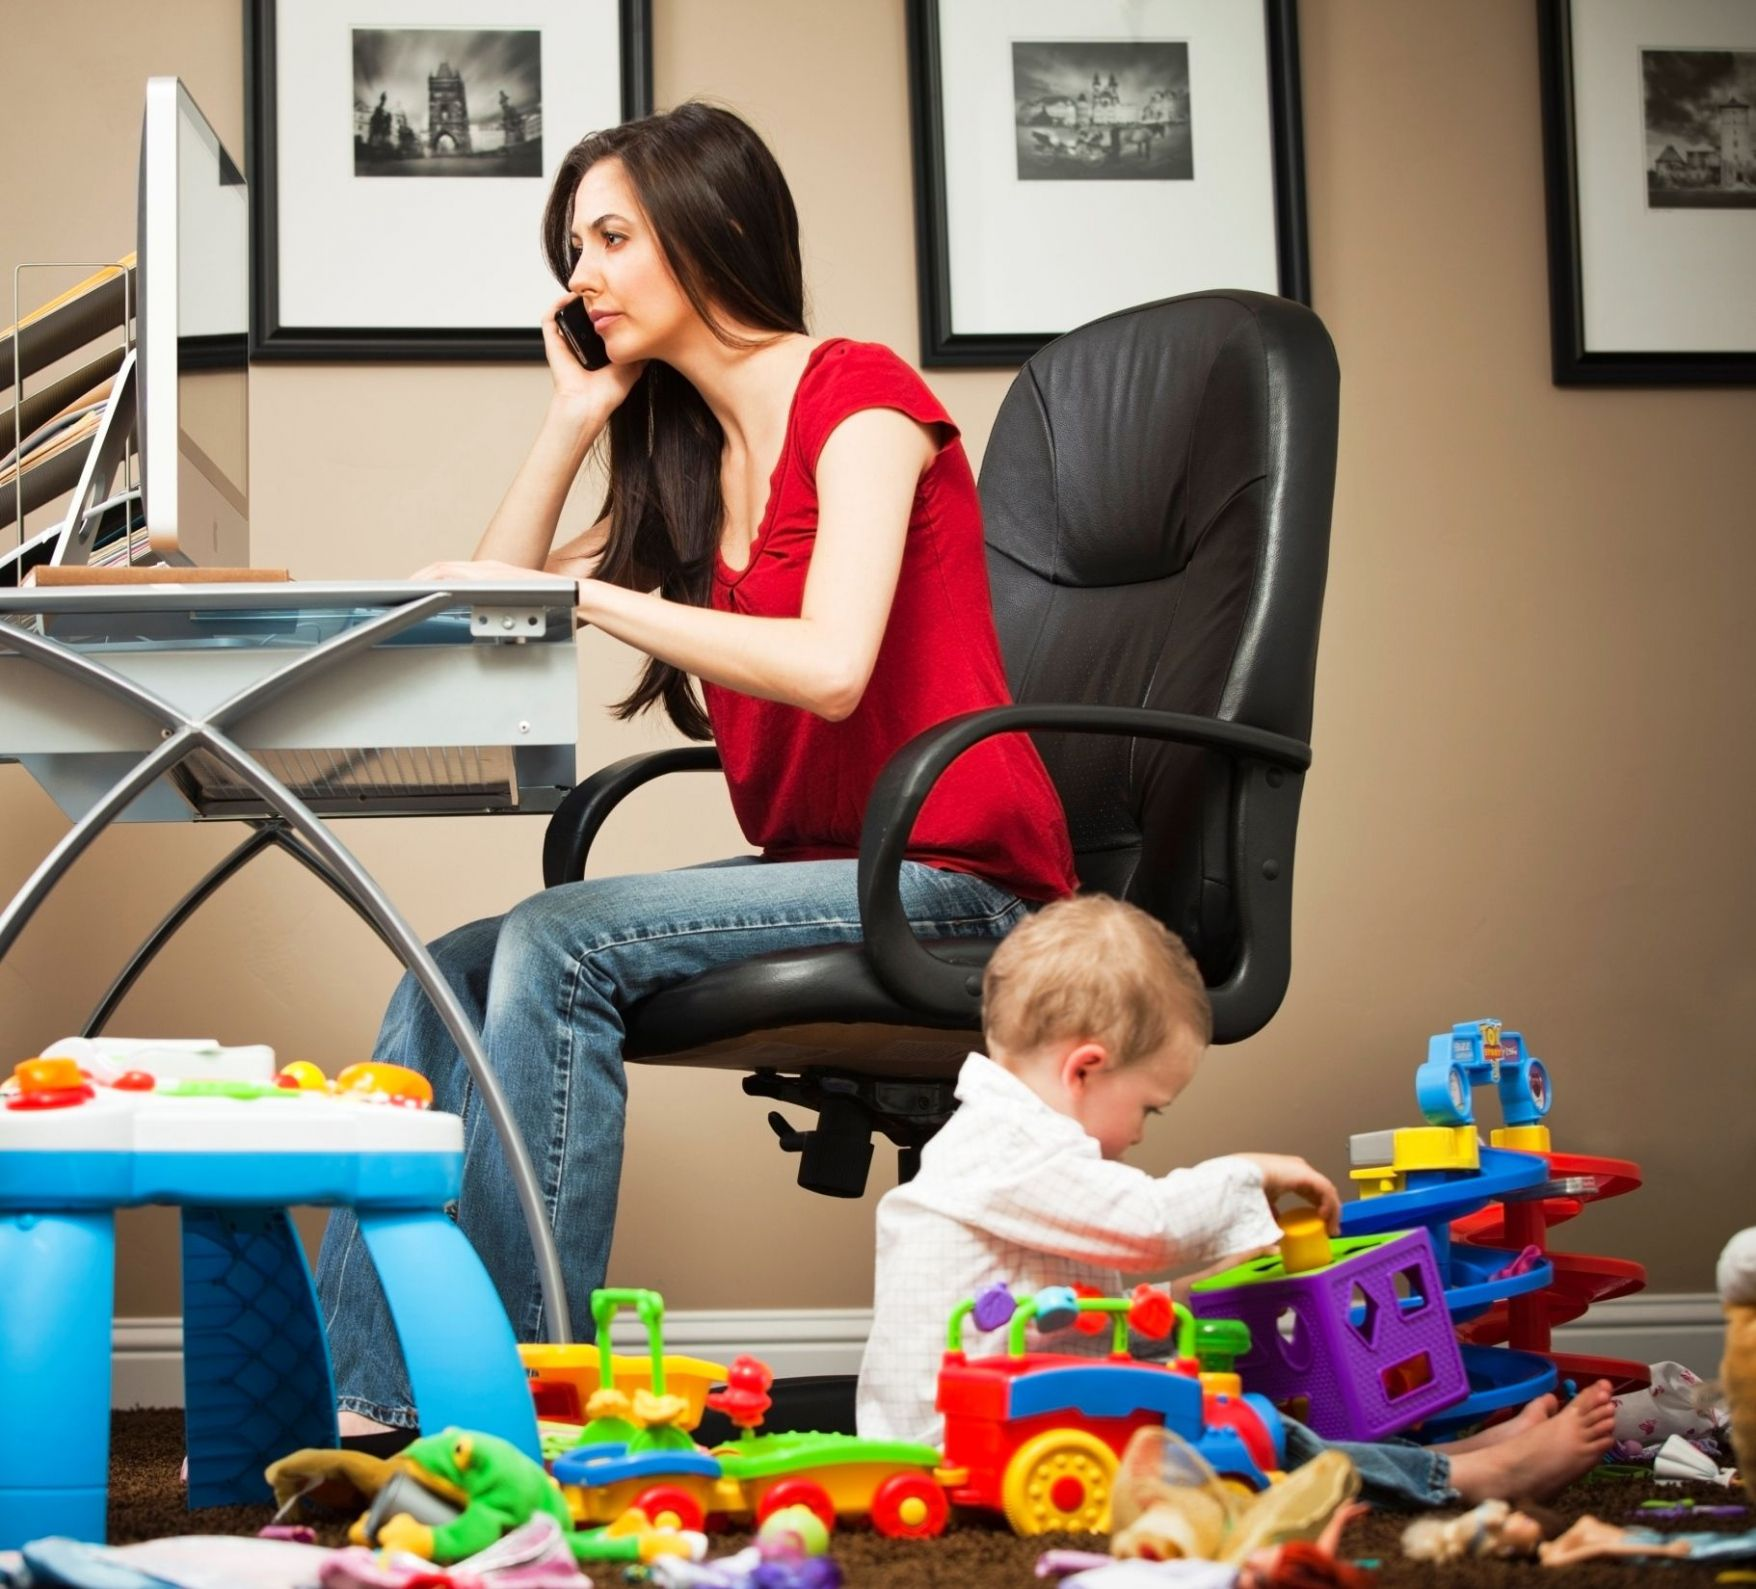 new small business ideas for stay at home moms check more at http